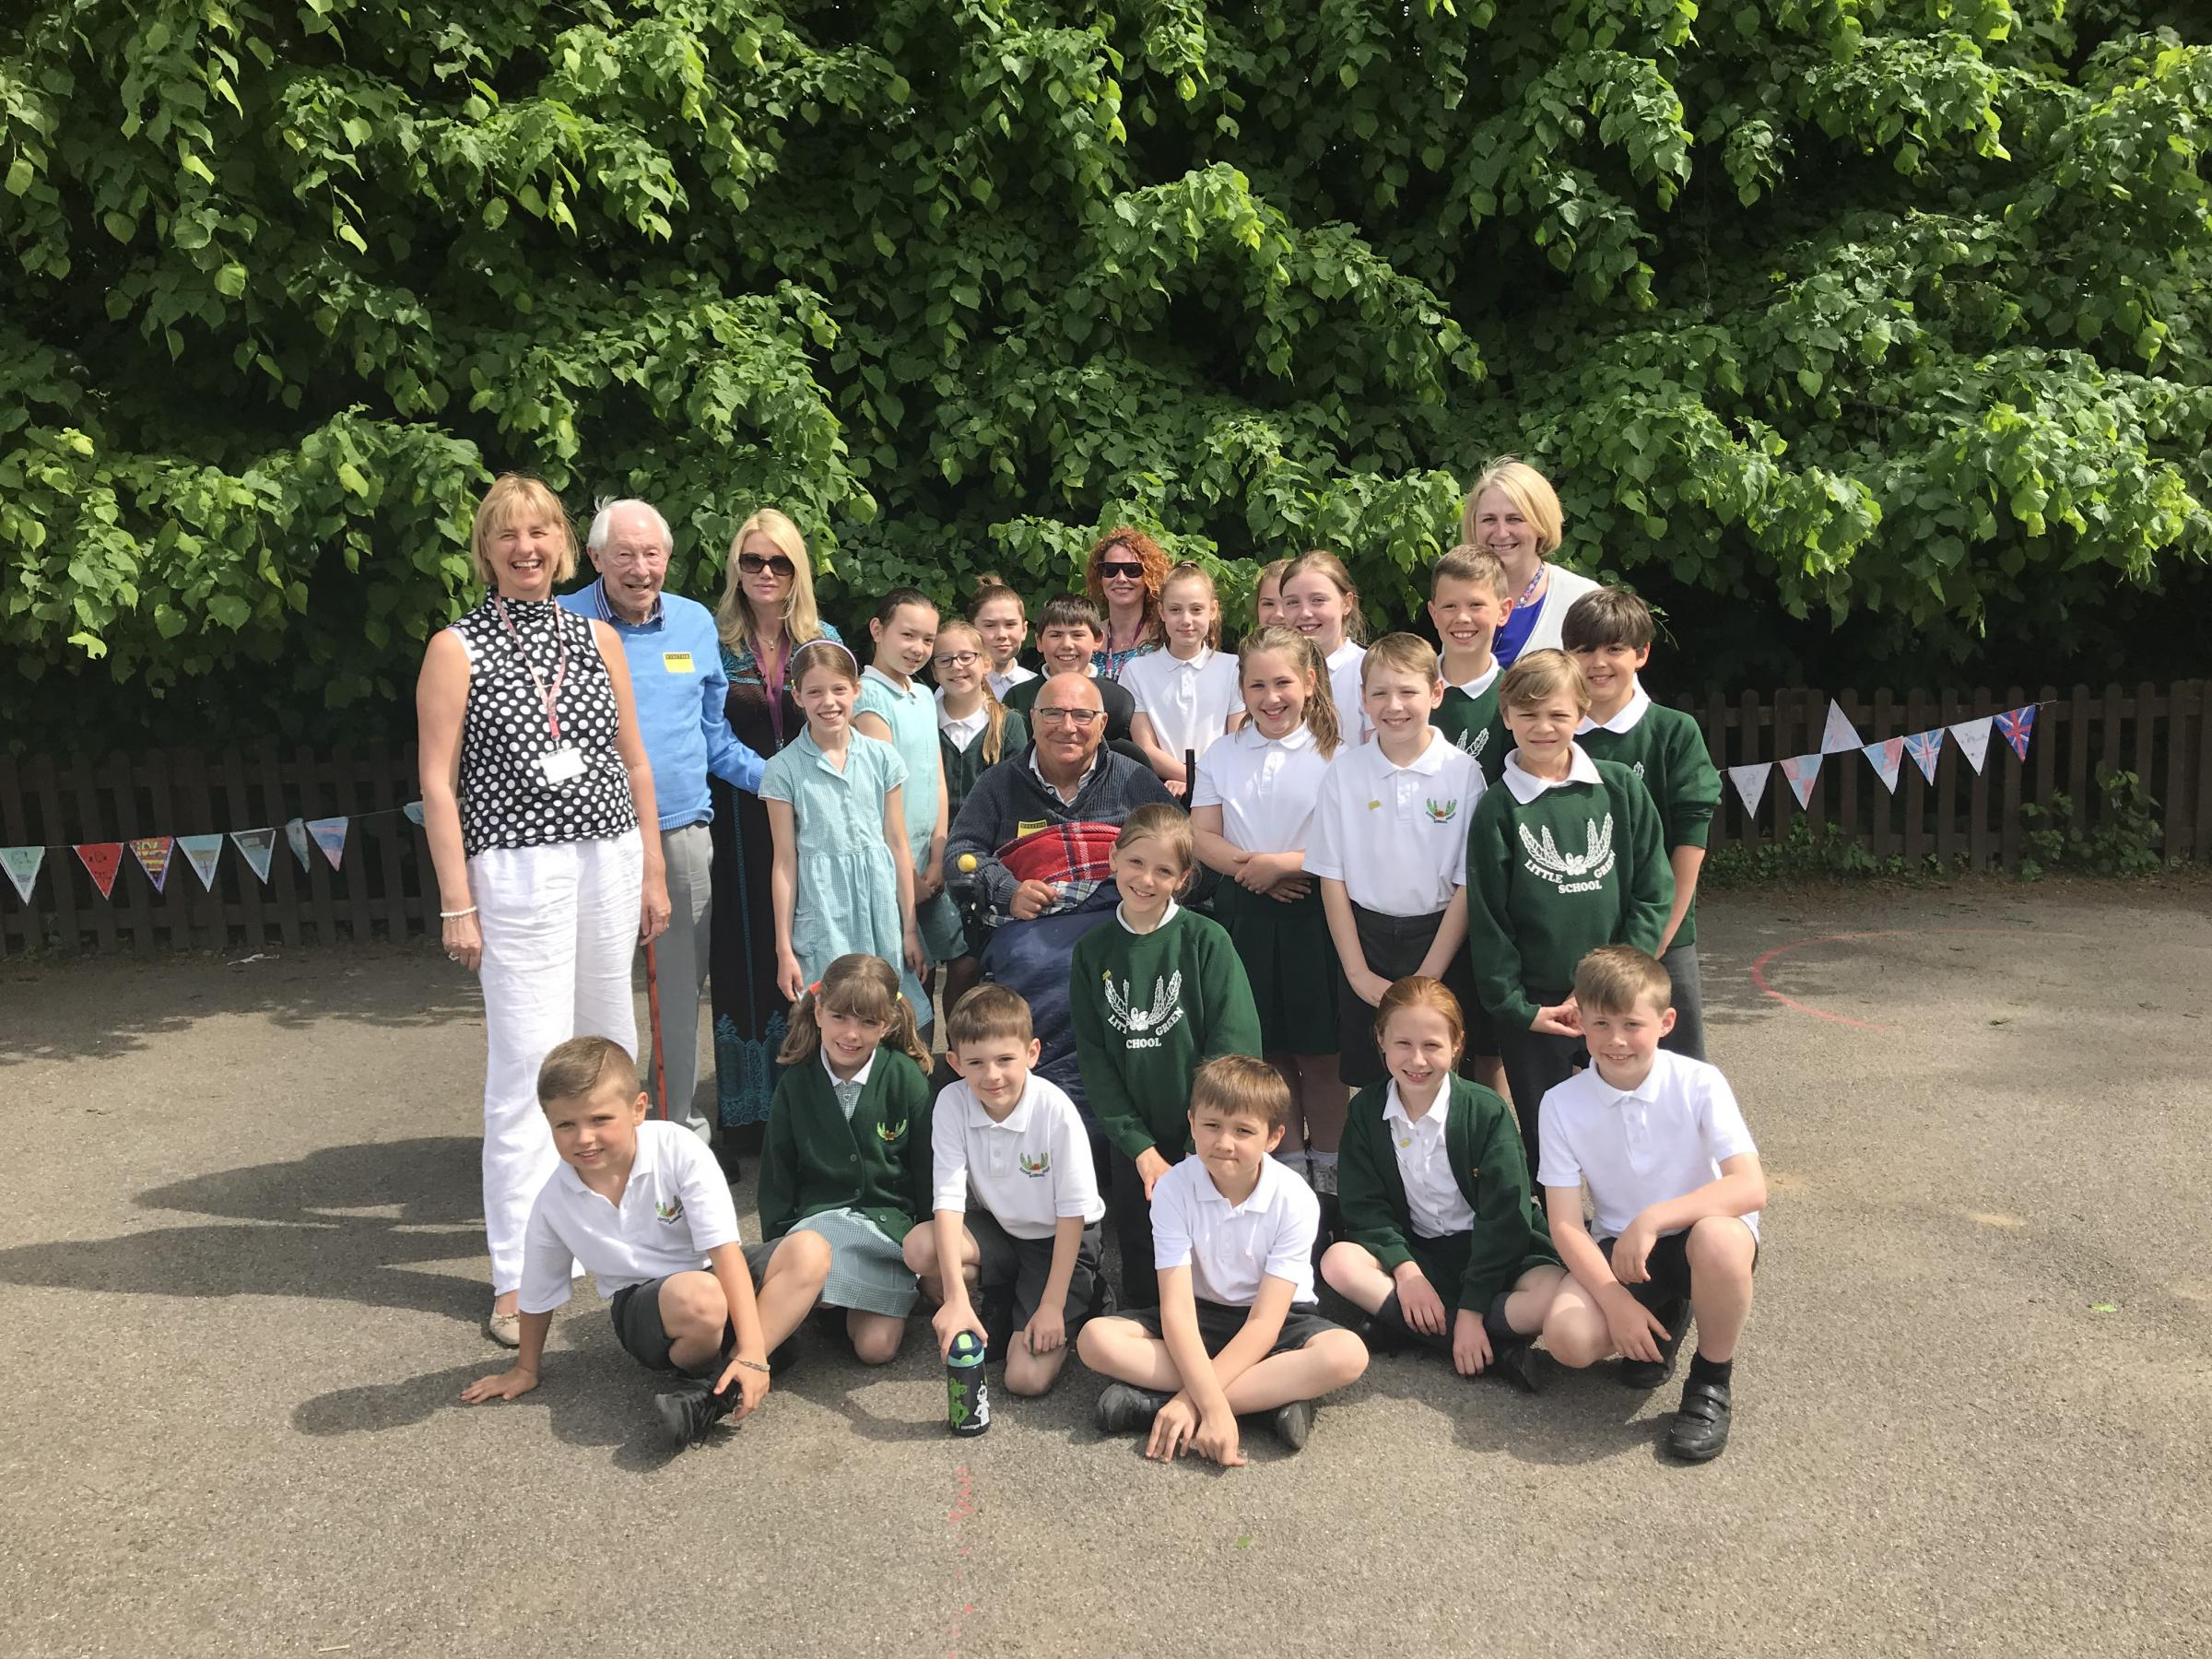 Left to right: Suzanna Boddy (deputy head teacher), Albert Bullock, Jody Bryant, Malcolm Cracknell (centre), Emma Neighbour, Mrs Tearle (head teacher) and pupils from Little Green School